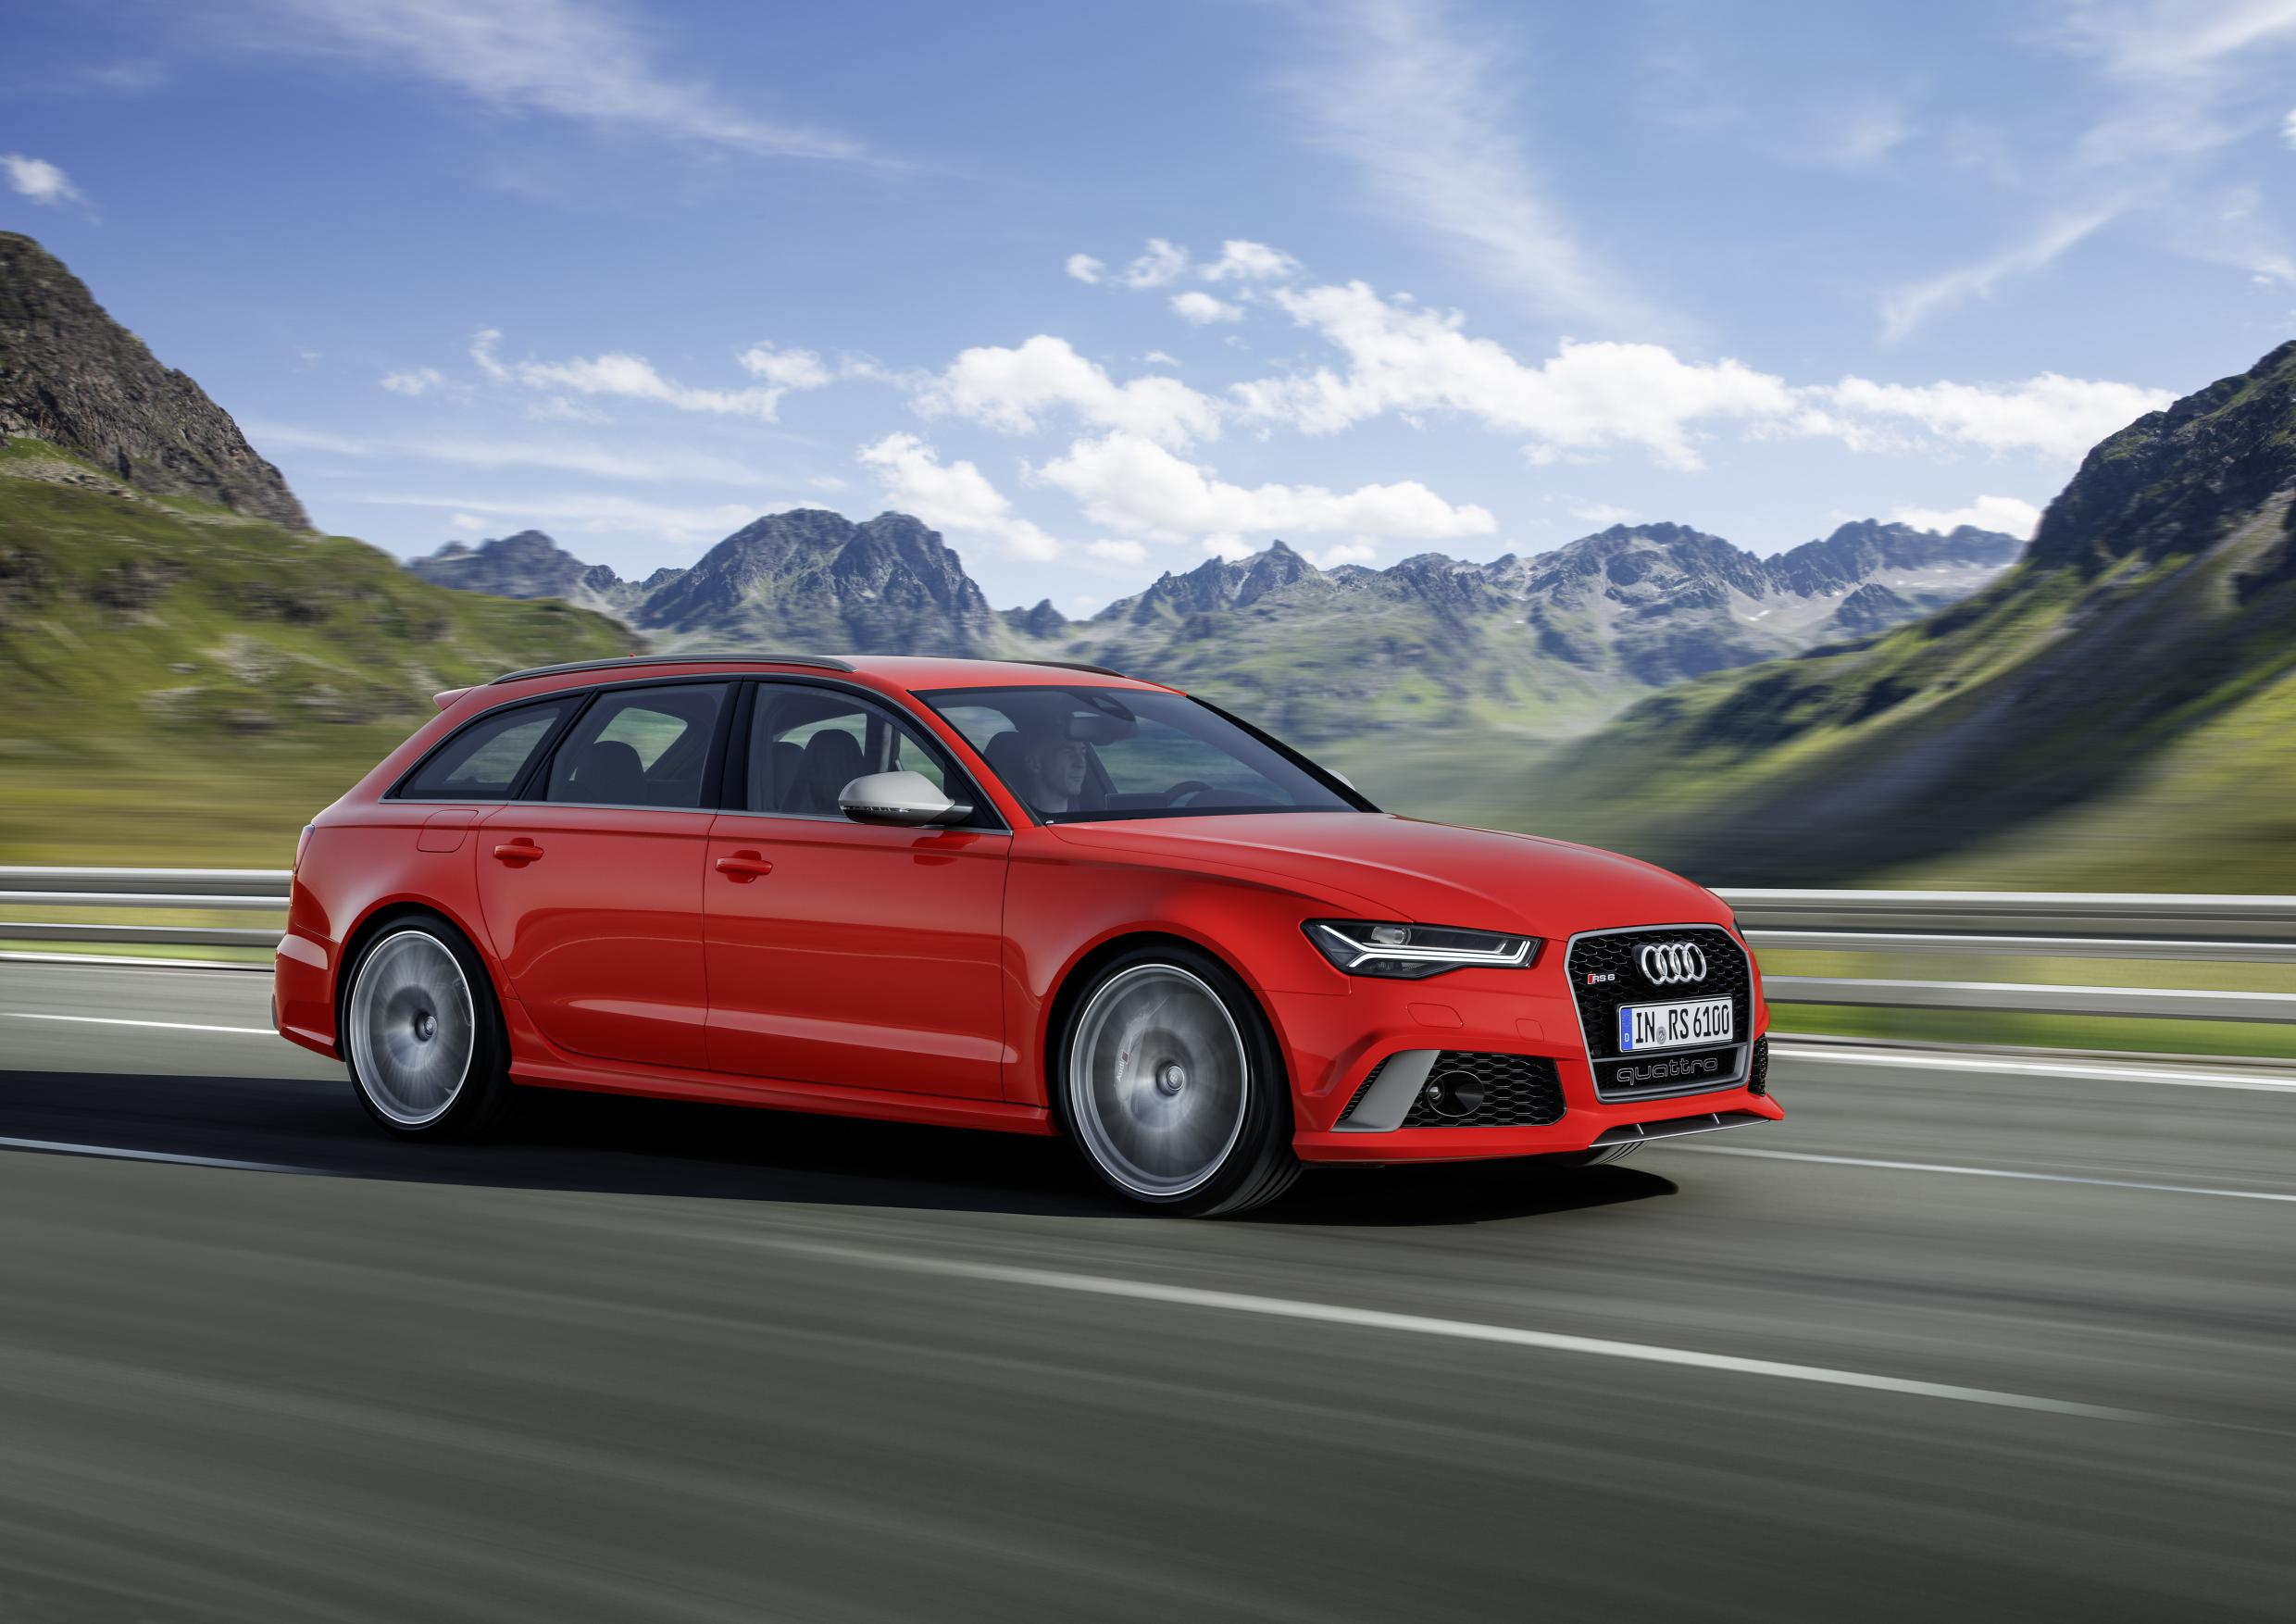 Audi A6 side view in red